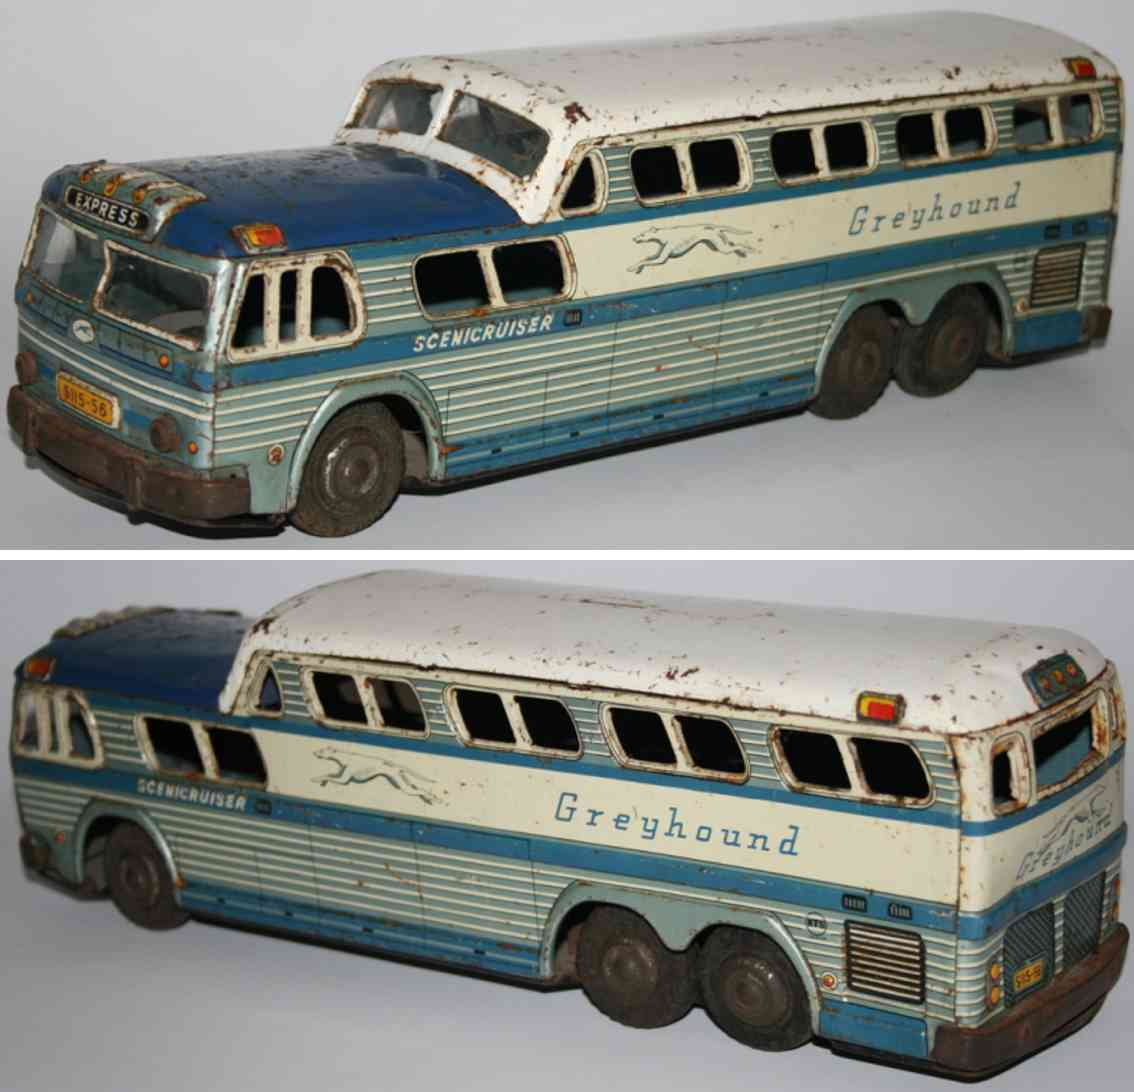 tatsuya shoten kts tin toy bus greyhound scenicruiser